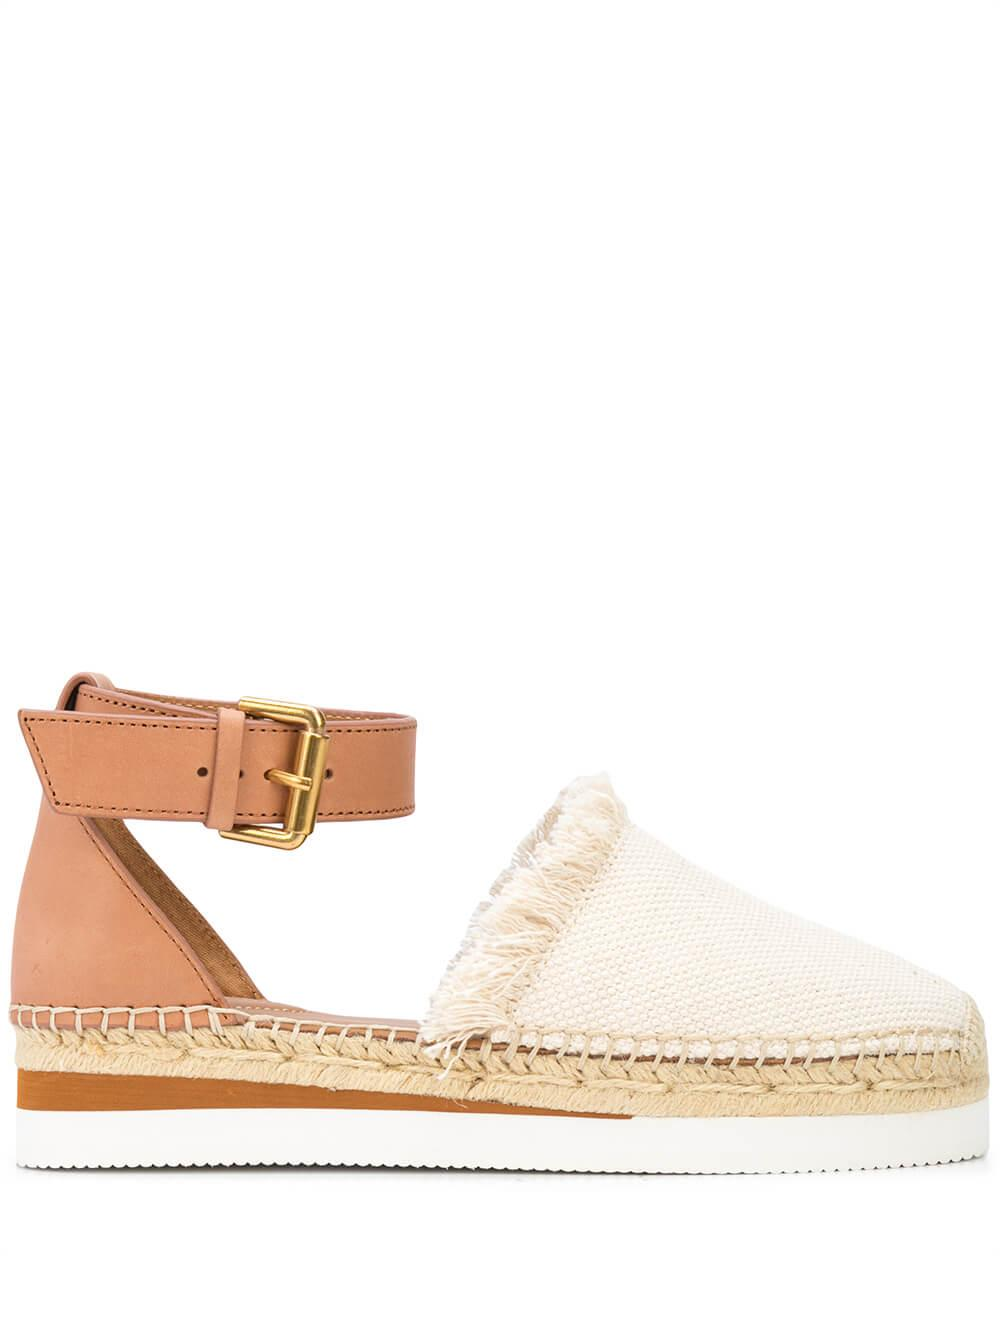 Canvas/Leather Platform Espadrille